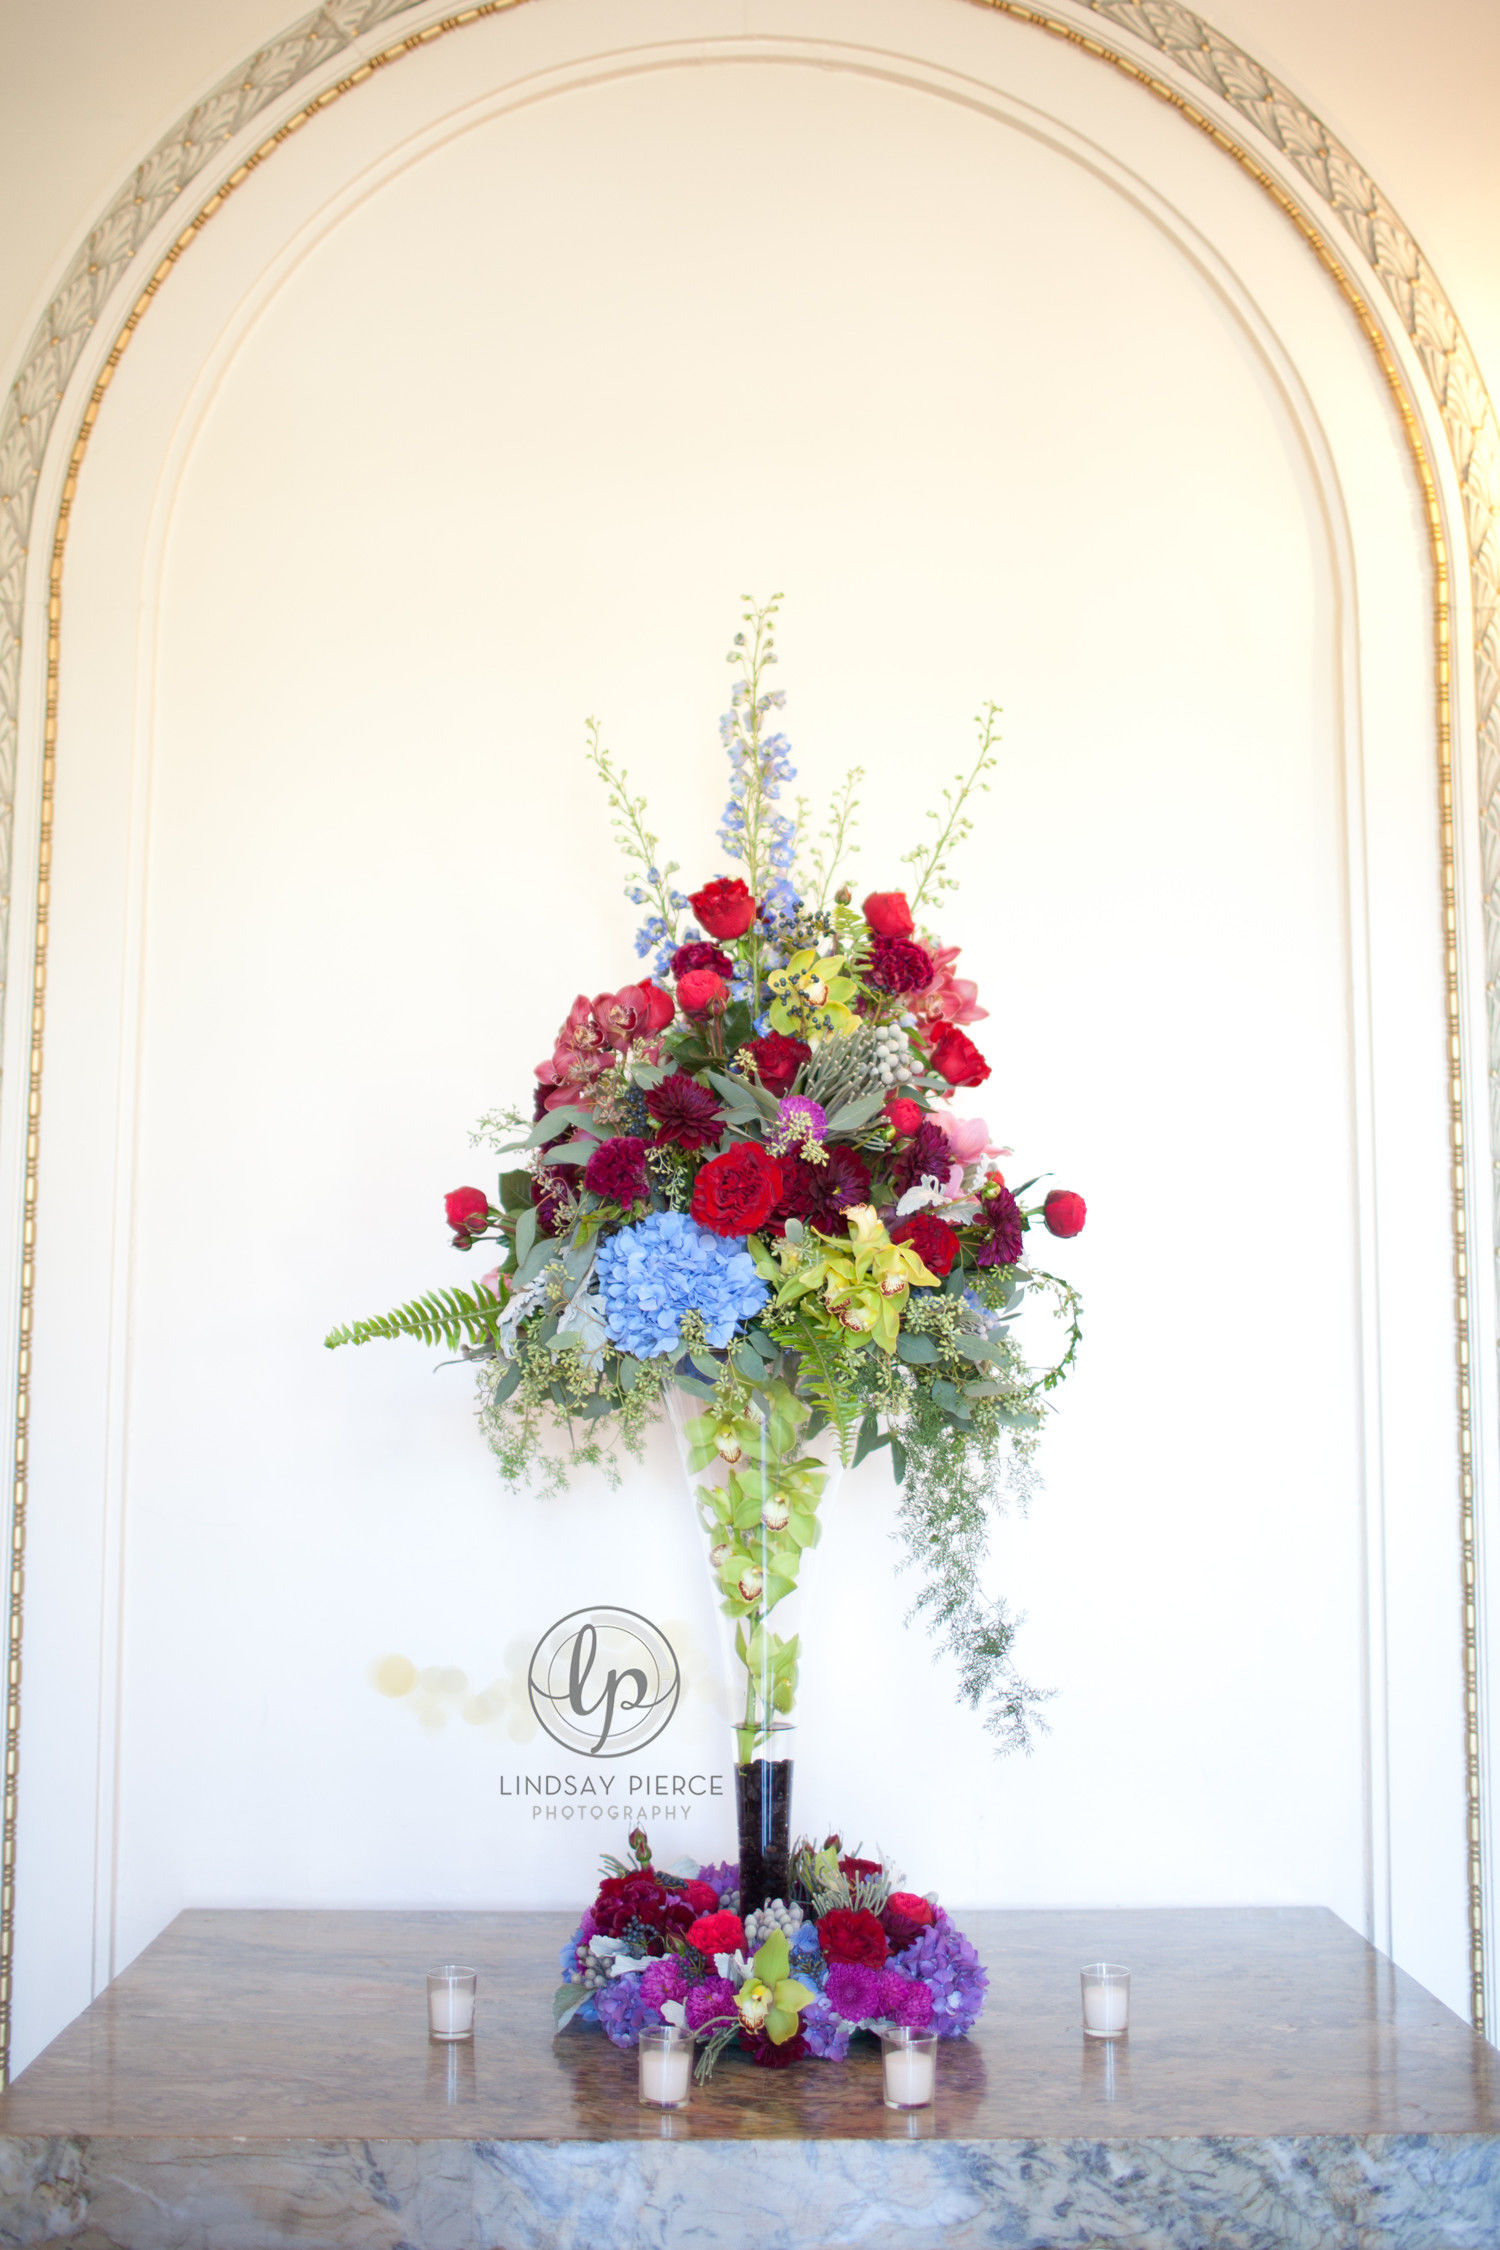 Wedding Centerpieces Designs - Danvers Local Wedding Florist